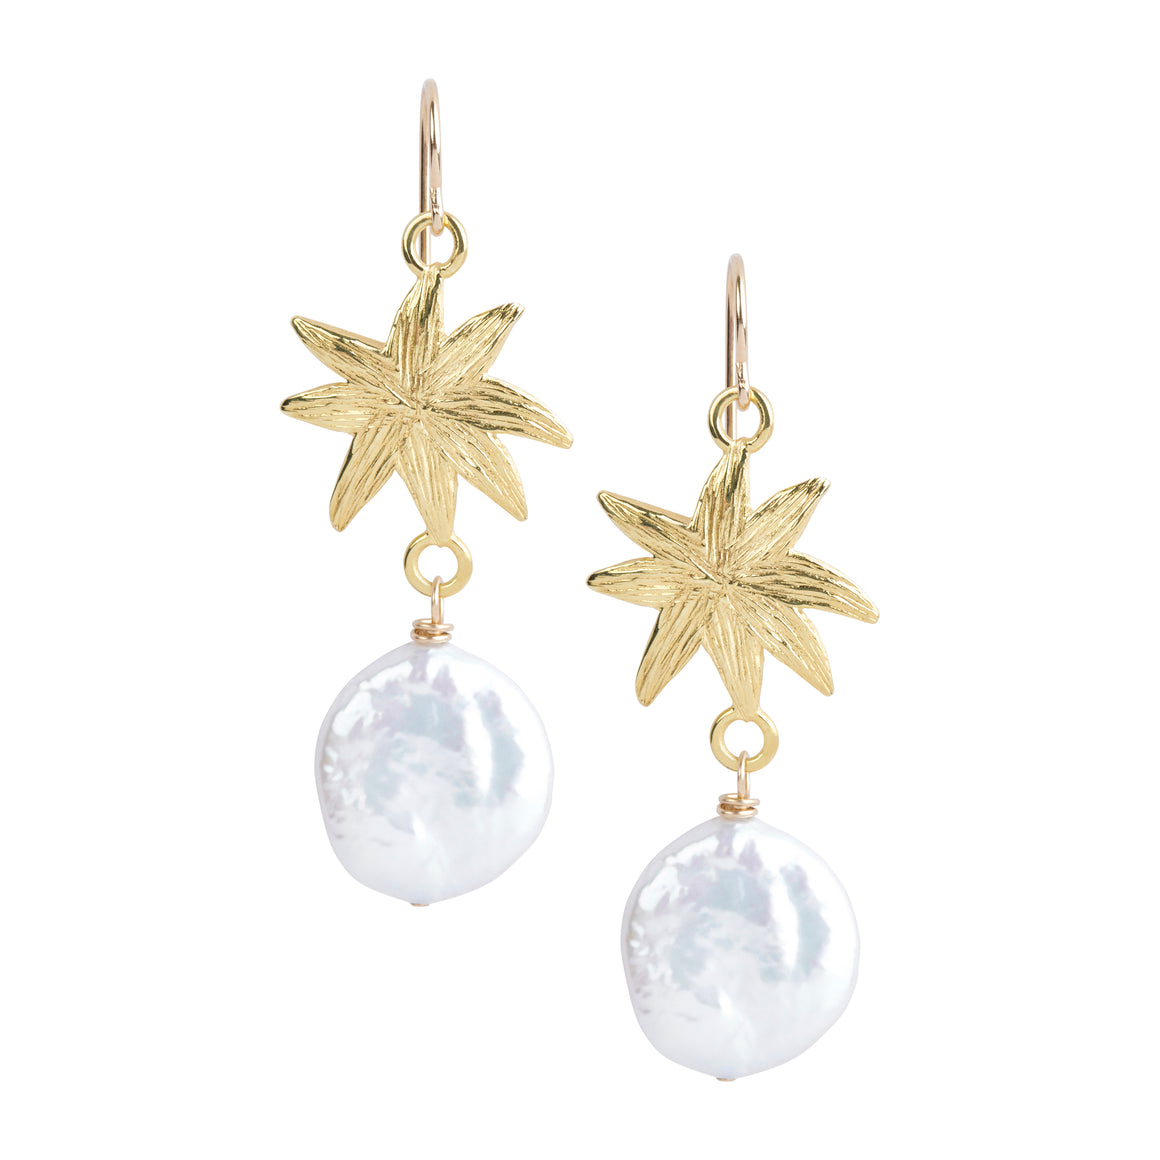 *HIDDEN GEM* HopeStar Earrings with Coin Pearl Drops - A Reminder Of Your Beauty Within - PRICE IS $47.50 WHEN USE CODE SUMMERFINAL50 FOR 50% OFF